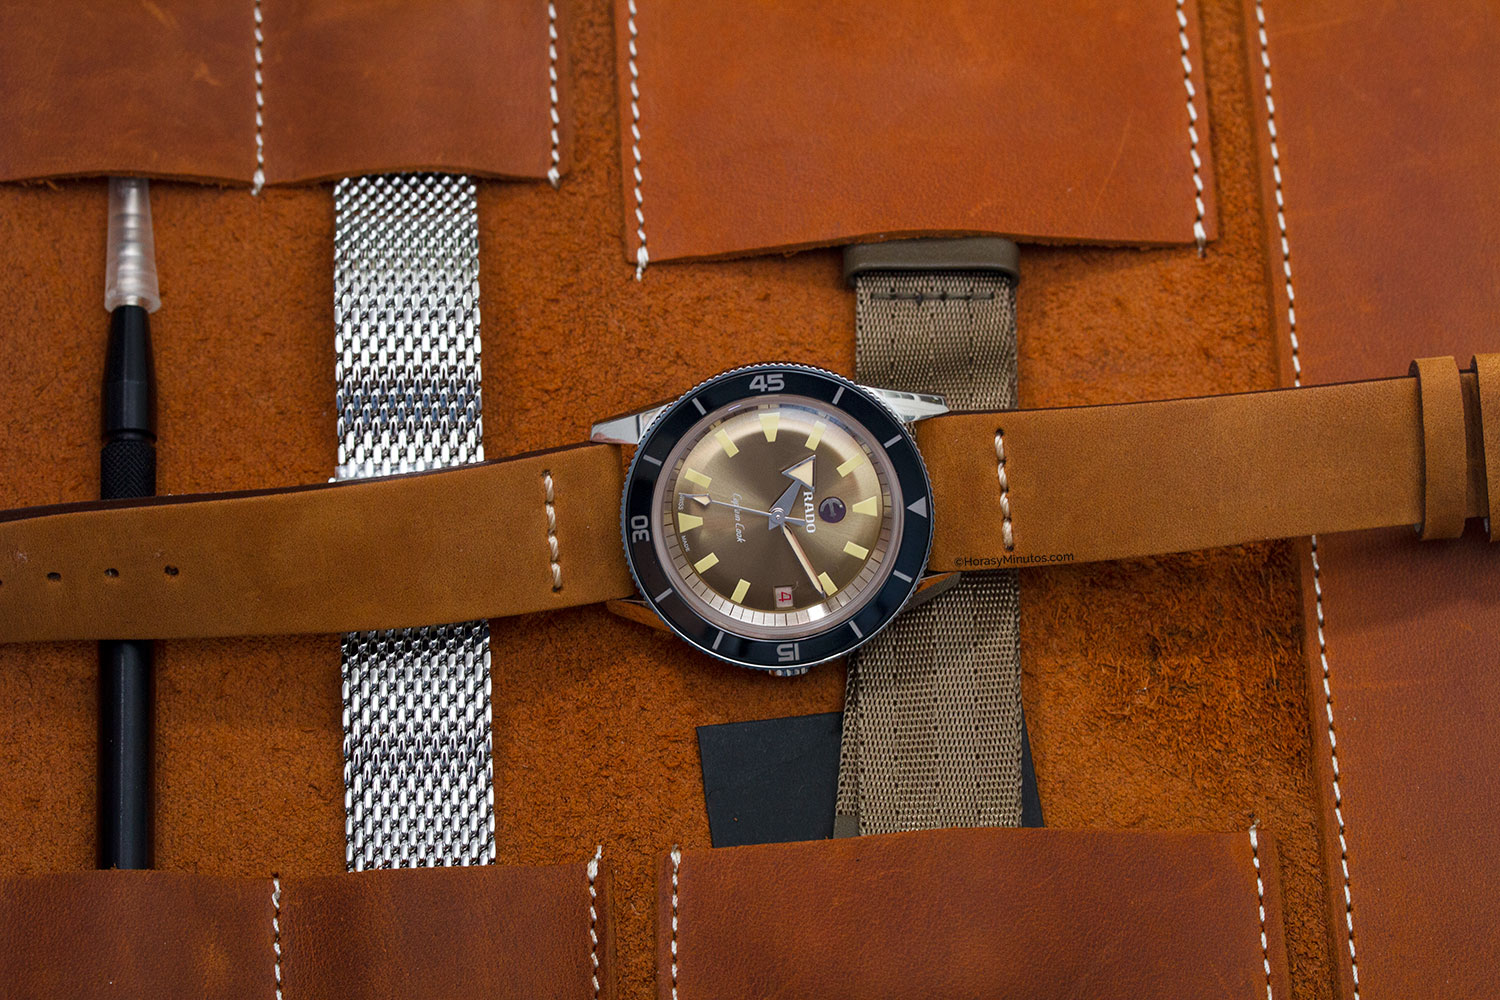 Estuche del Rado Captain Cook 37 mm Limited Edition